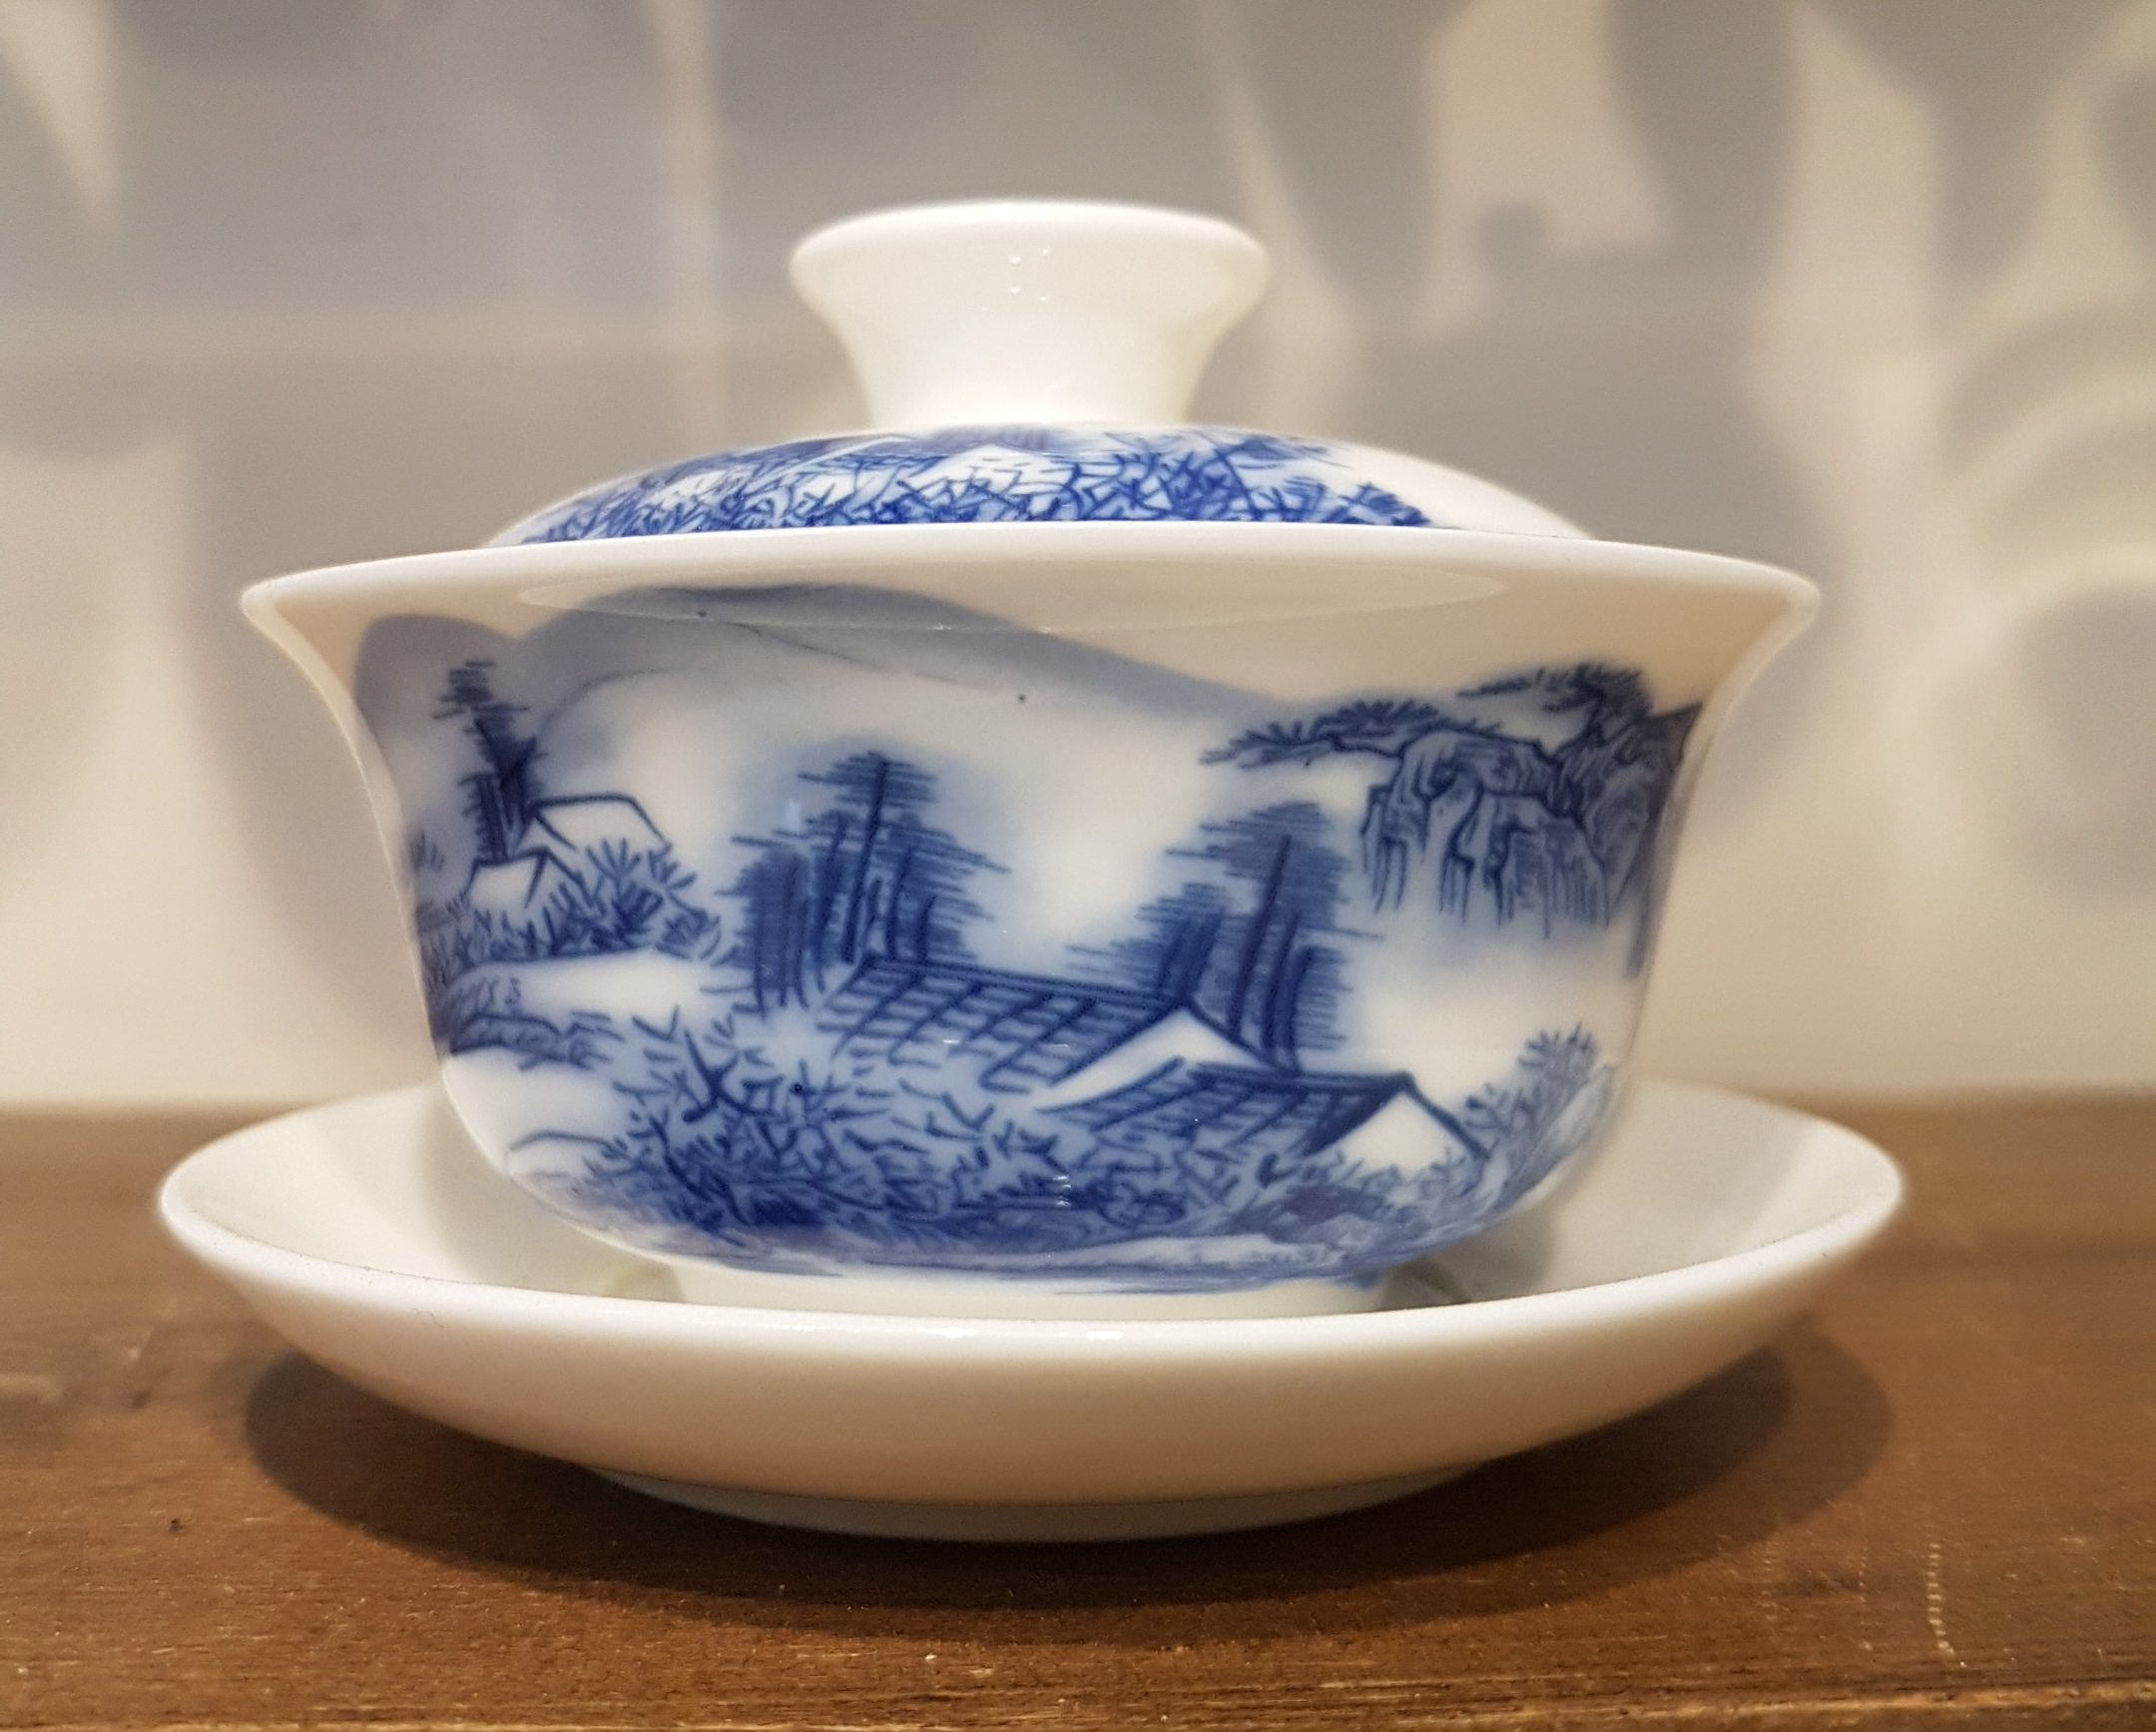 Chinese Gaiwan with a landscape pattern on it